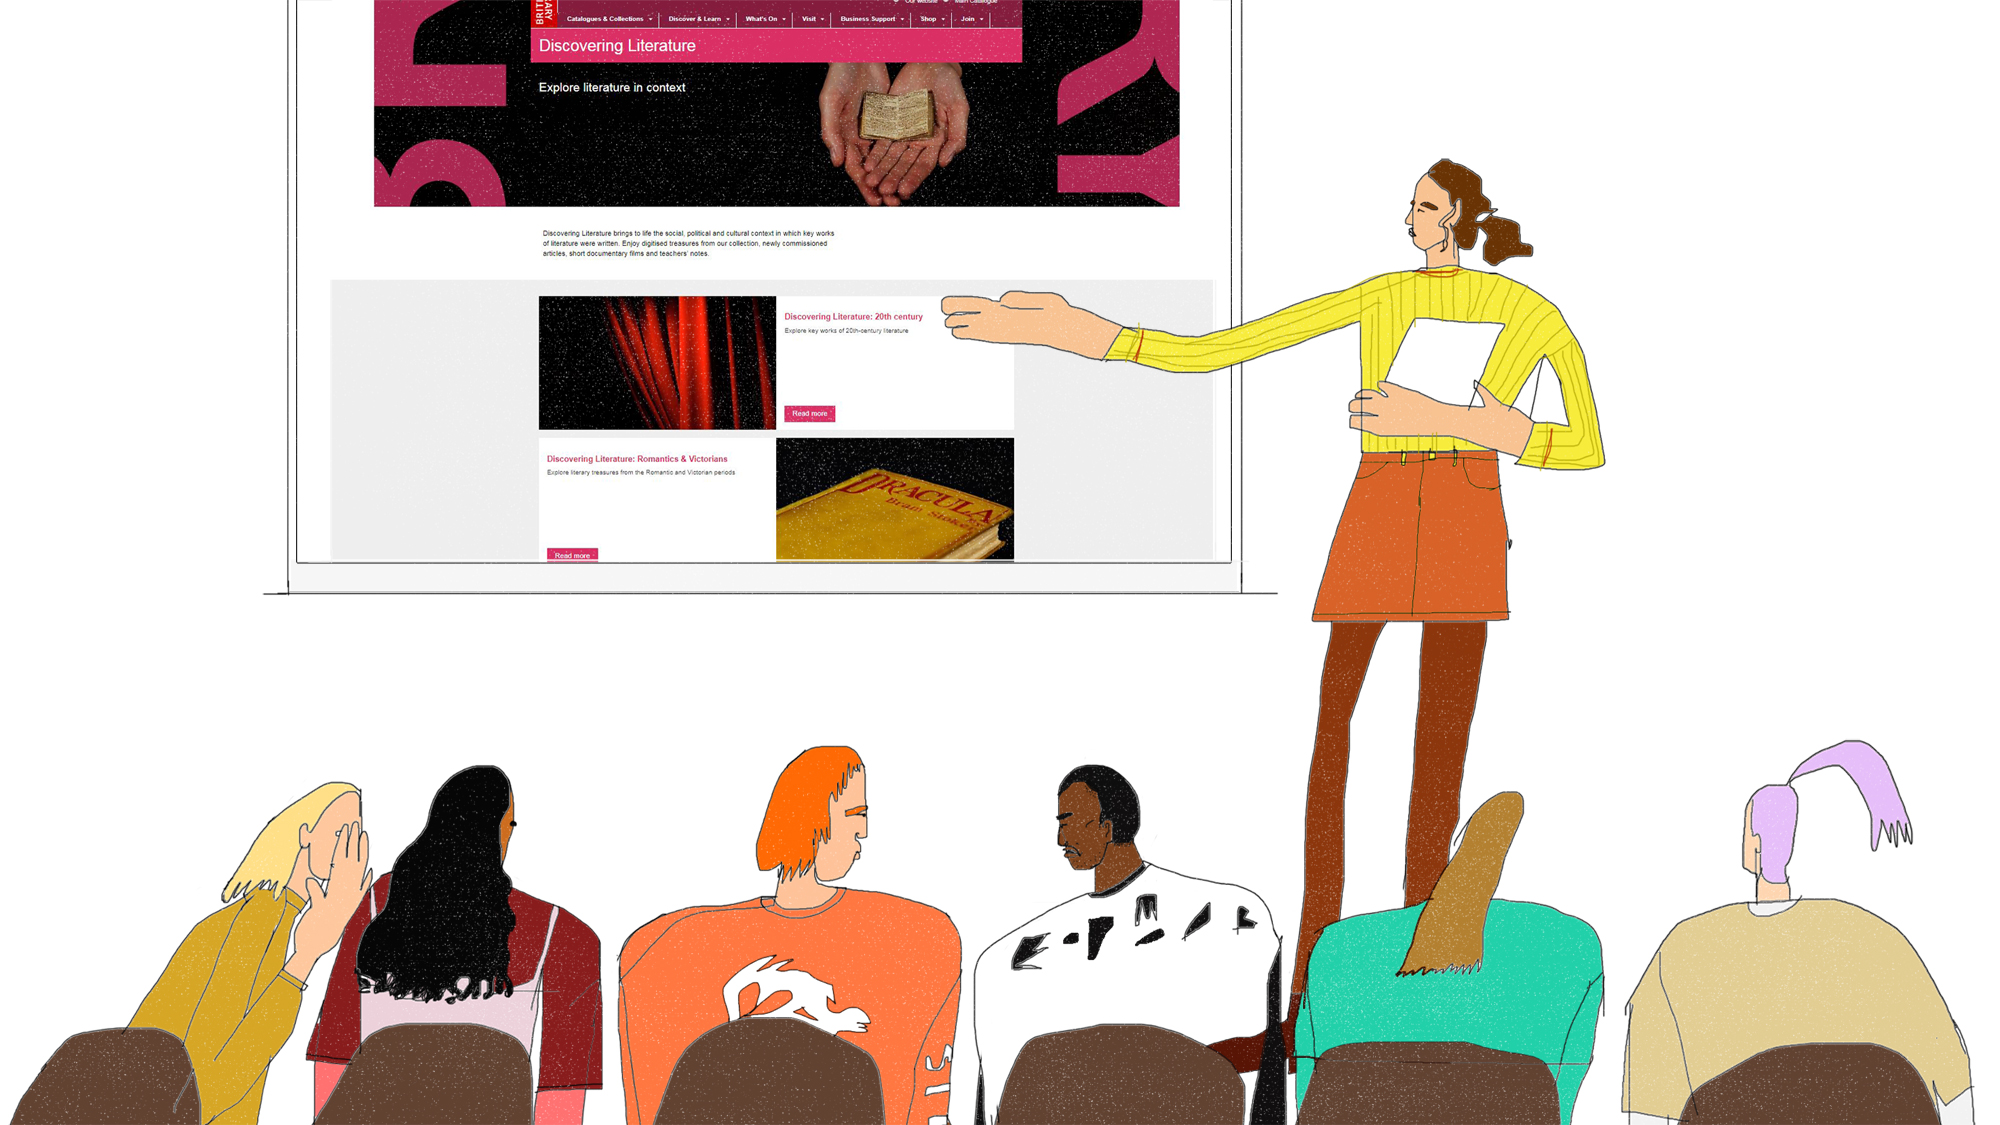 Illustration of person giving oral presentation in front of classroom. On the screen is a page from Discovering Literature. Illustration by Hannah Buckman